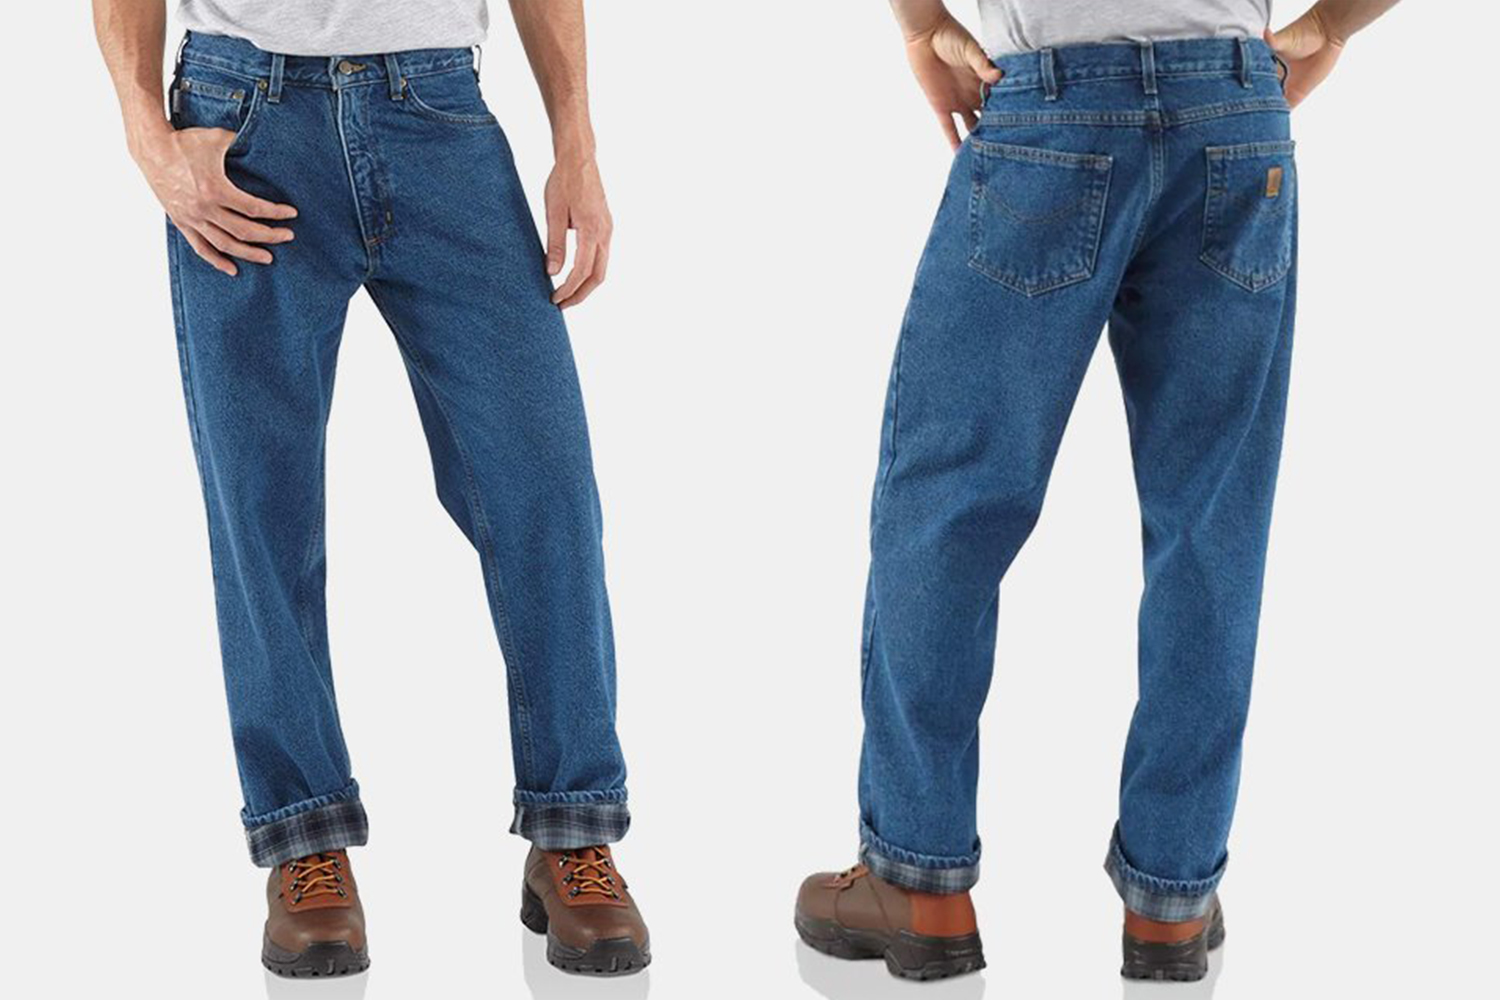 Carhartt Relaxed-Fit Straight-Leg Flannel-Lined Jeans